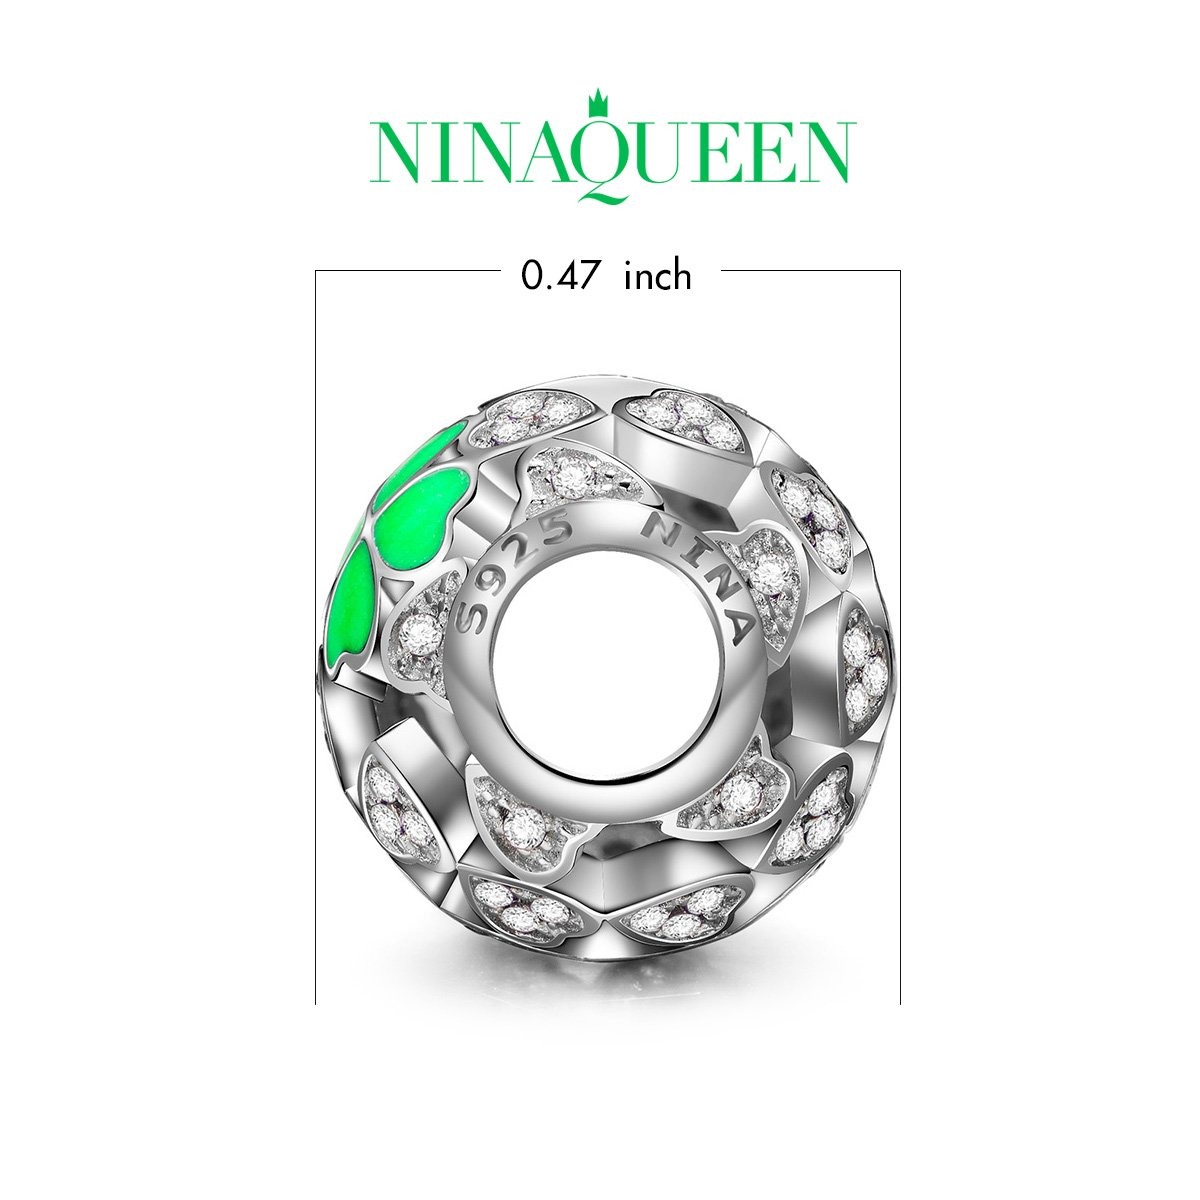 NINAQUEEN Lucky Clover Silver Heart Mint Clovers Openwork Bead Charms for Pandöra Bracelets Necklace Jewelry Making Birthday Anniversary Women Gifts for Her Wife Girlfriend Daughter Teen Girls Kids by NINAQUEEN (Image #2)